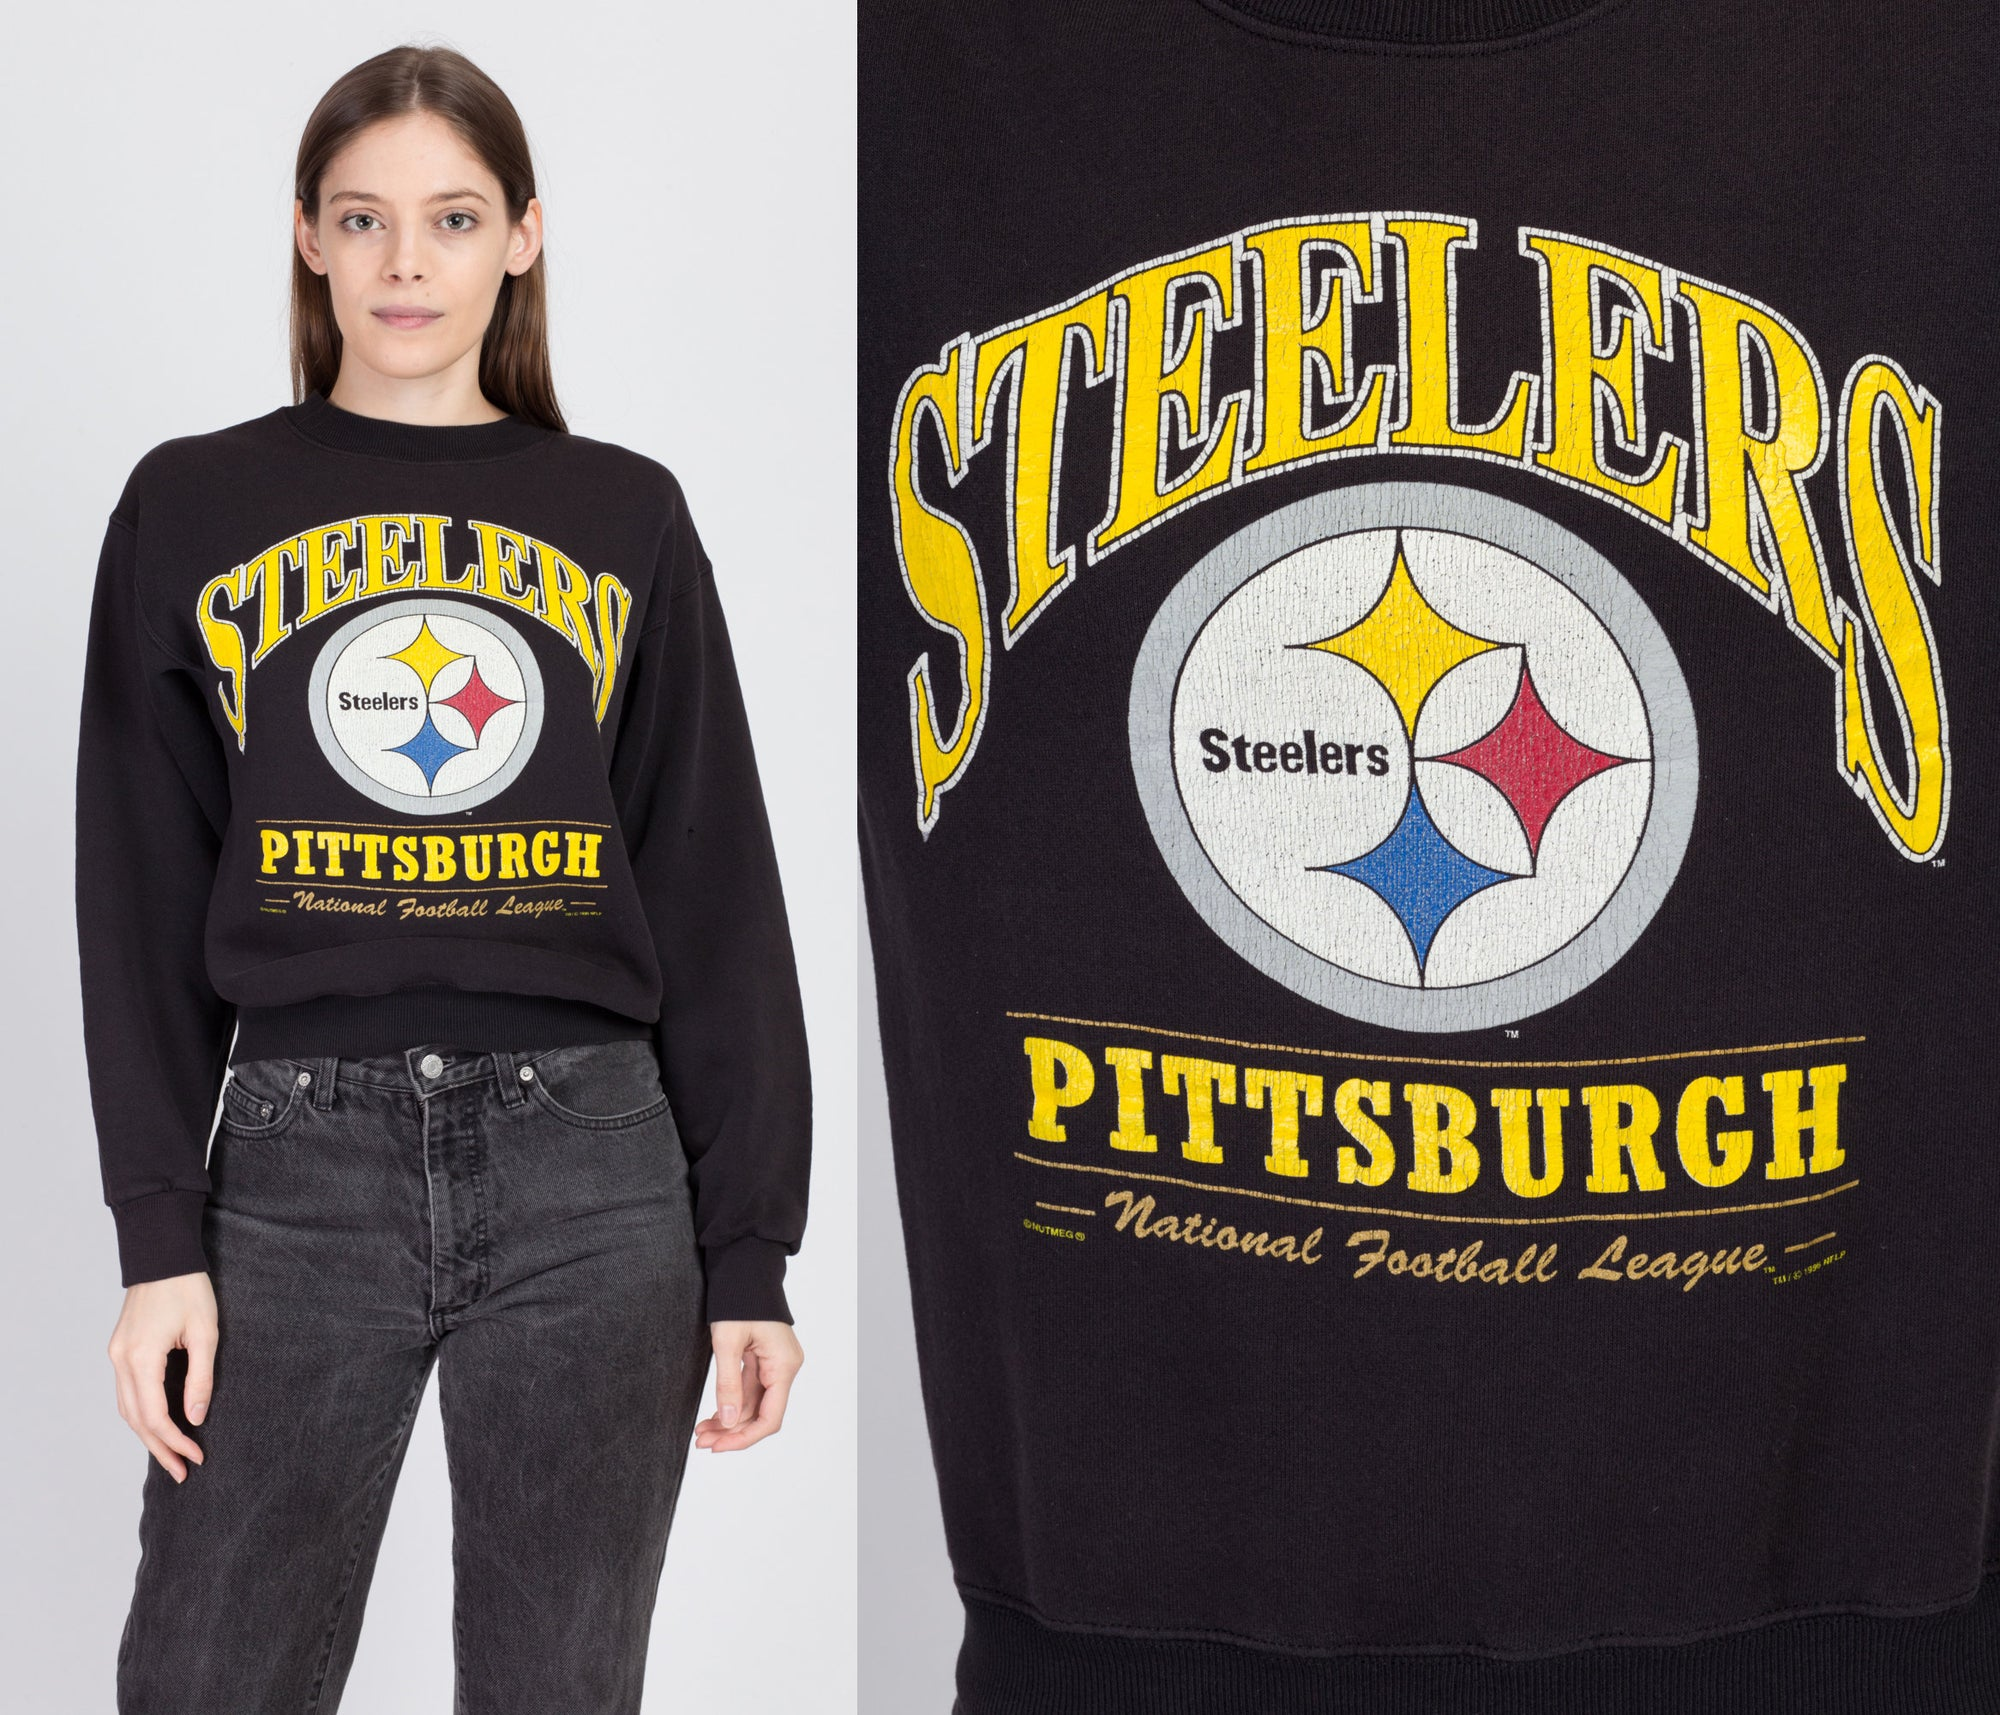 90s Pittsburgh Steelers Sweatshirt - Medium